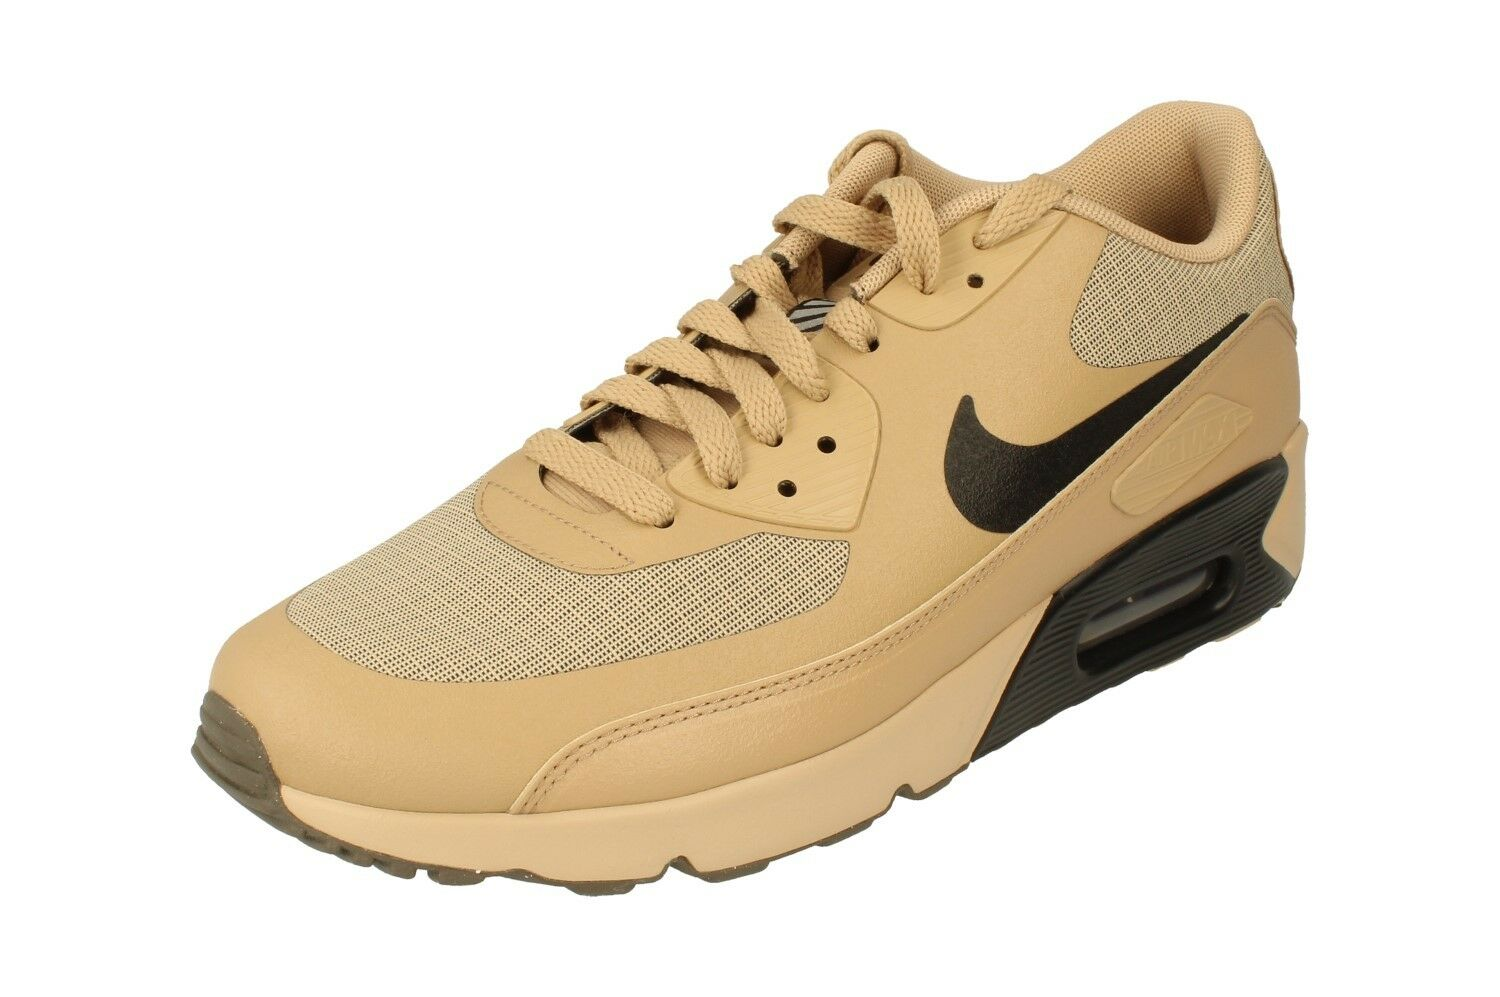 save off e8c2e 26c72 Nike Air Max 90 Ultra Ultra Ultra 2.0 nous Homme Running Baskets Ao7505  Baskets Chaussures 200 868856